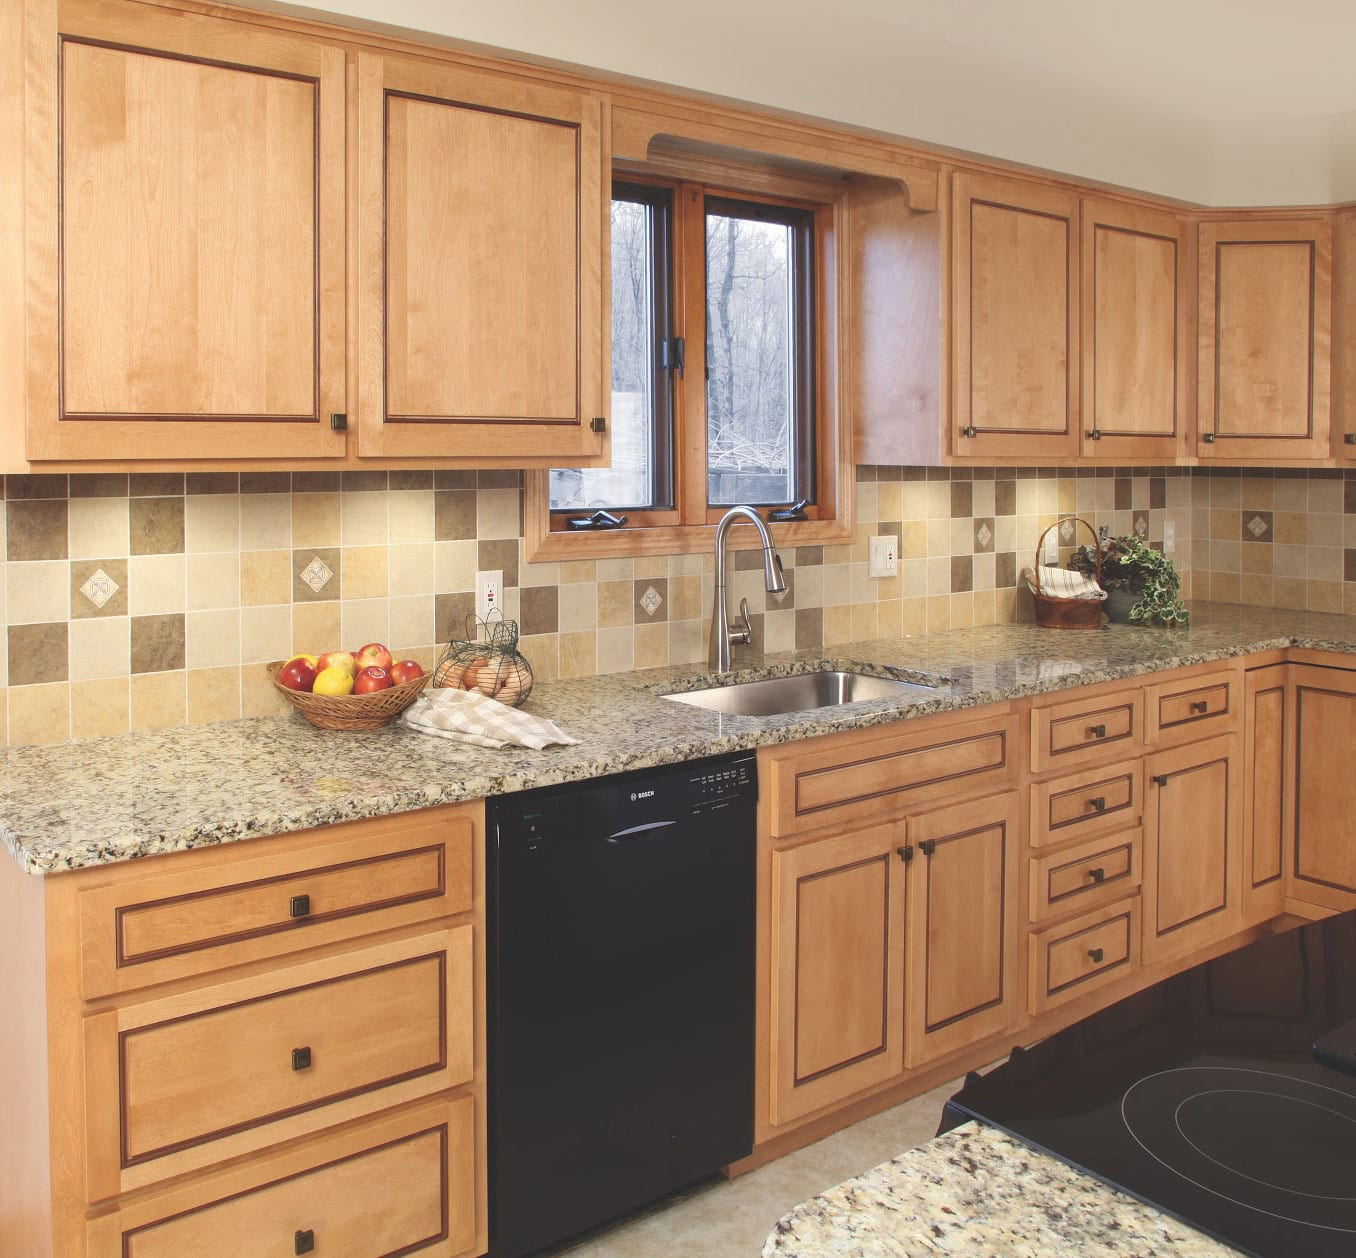 a picture of a Gray sink Run left in an old and contemporary style kitchen refacing